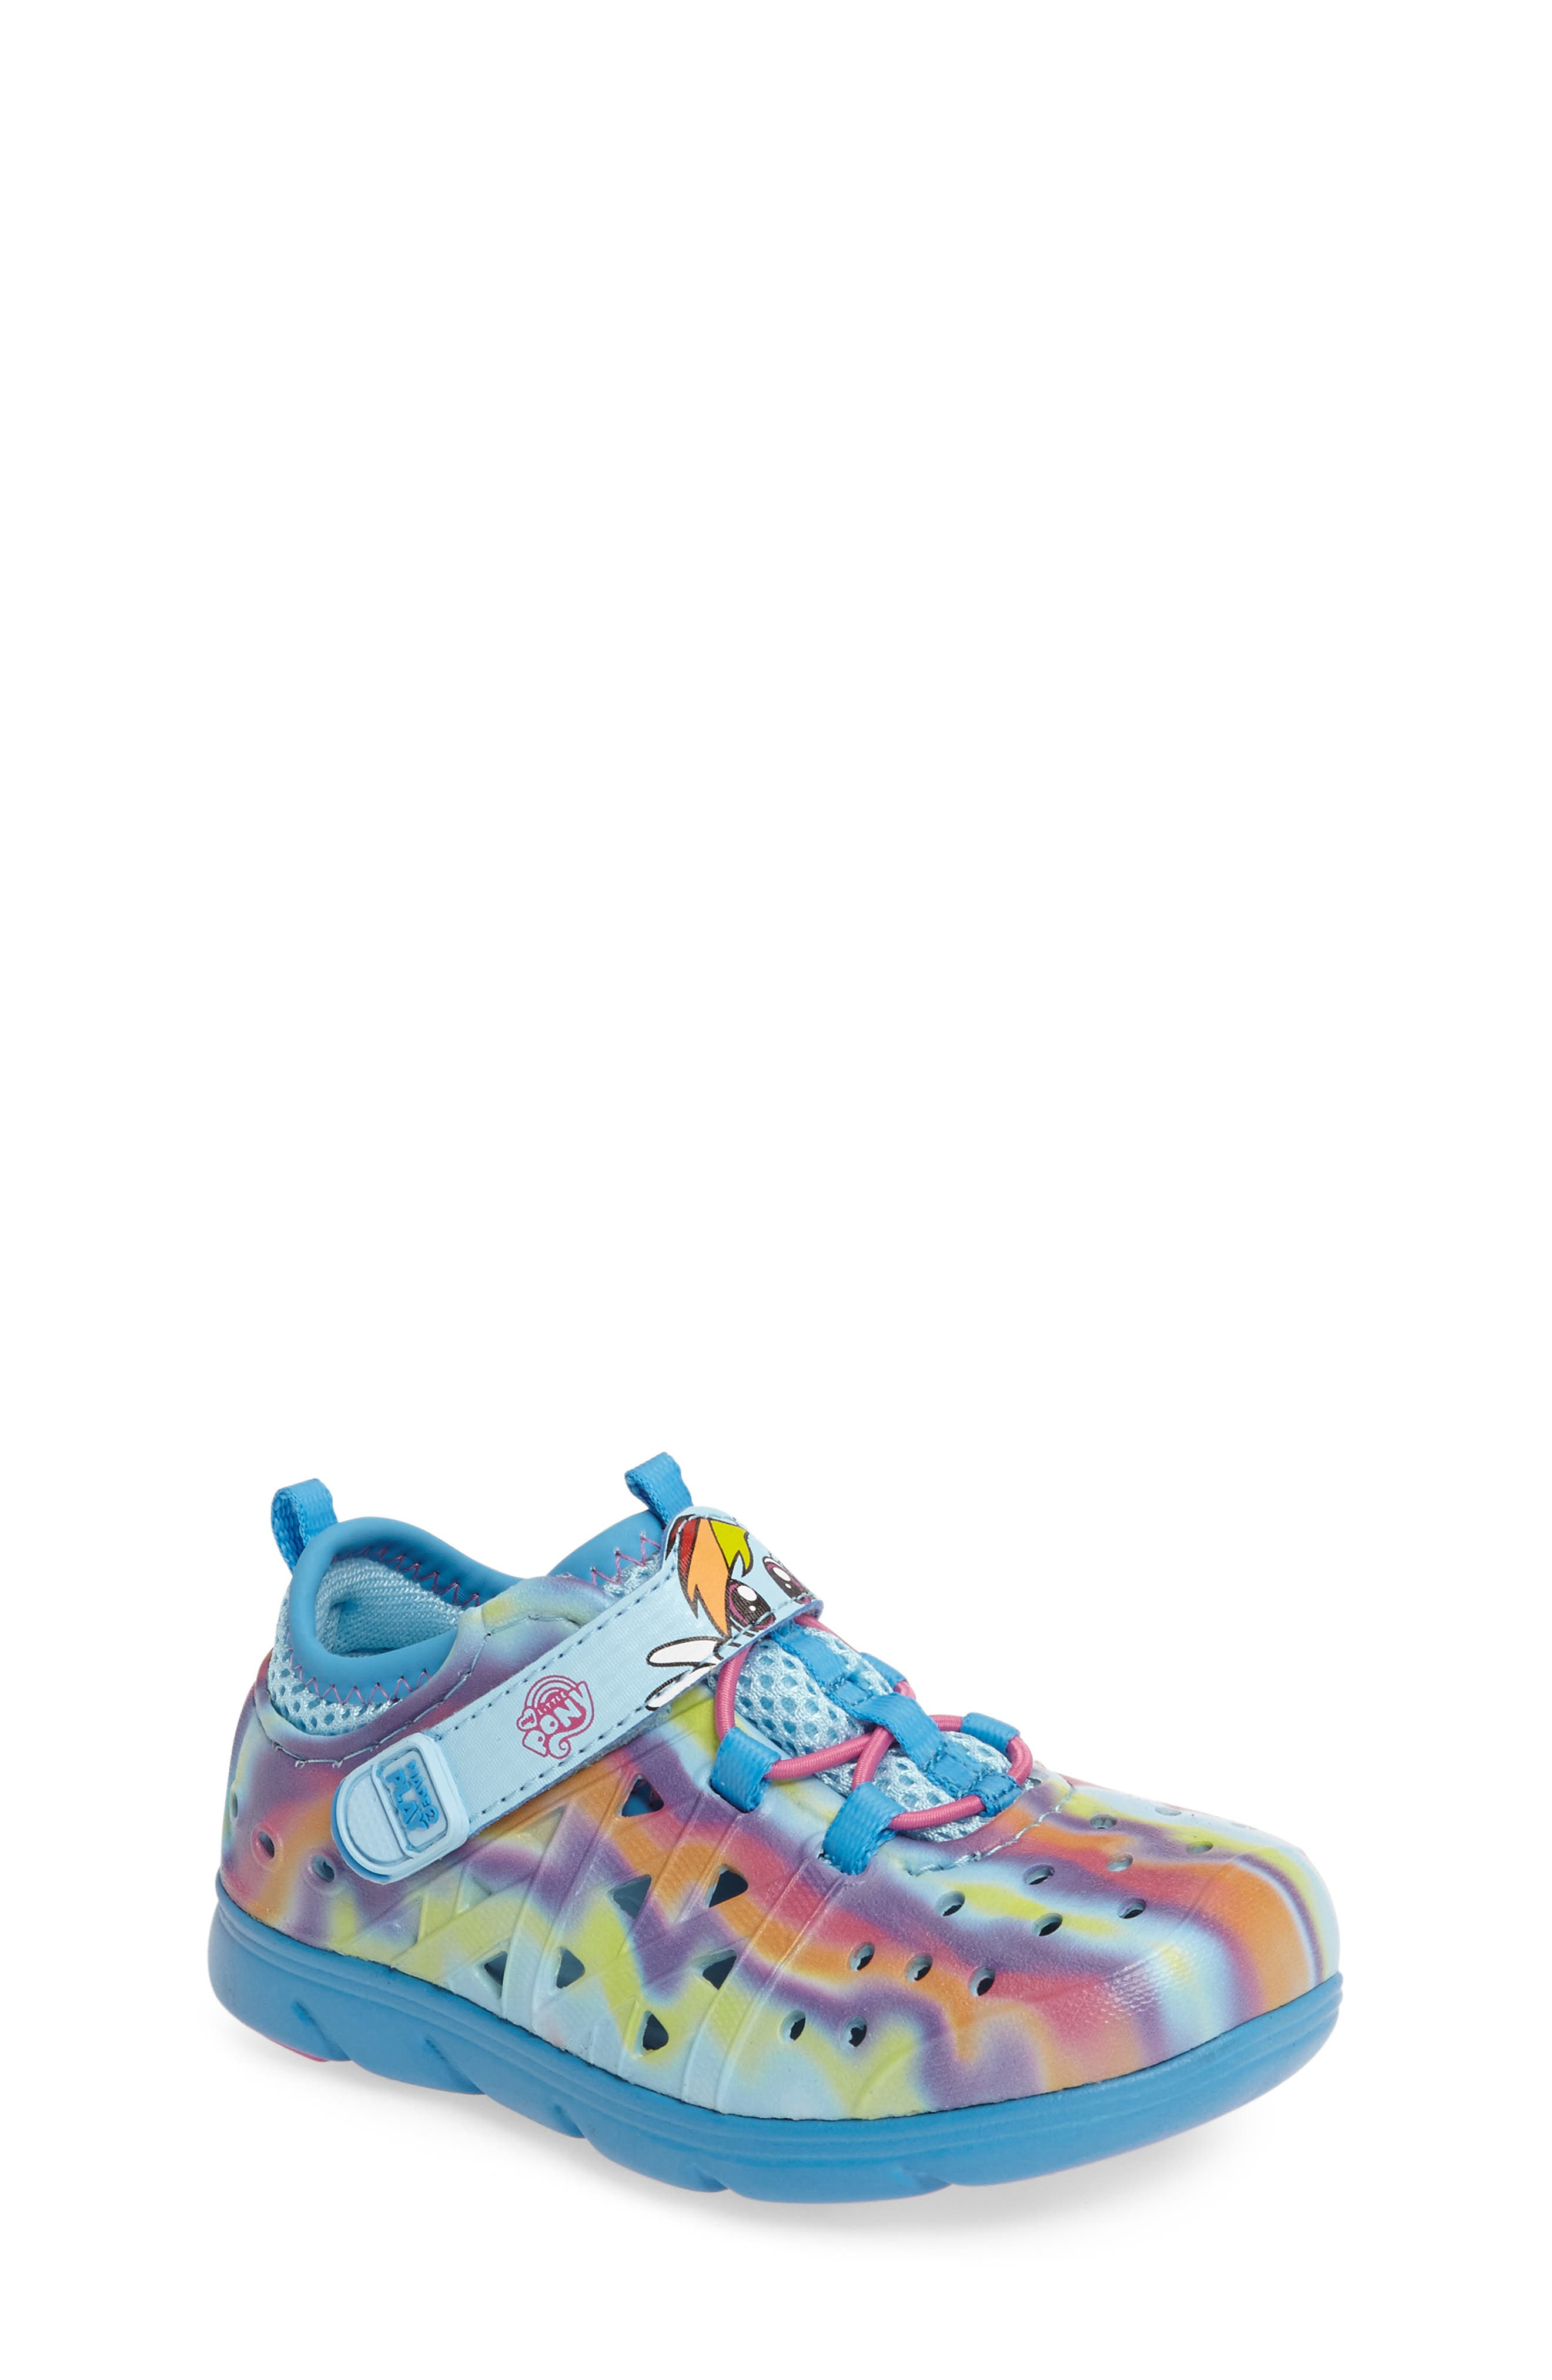 Made2Play<sup>®</sup> My Little Pony<sup>™</sup> Phibian Sneaker,                         Main,                         color, Rainbow Turquoise